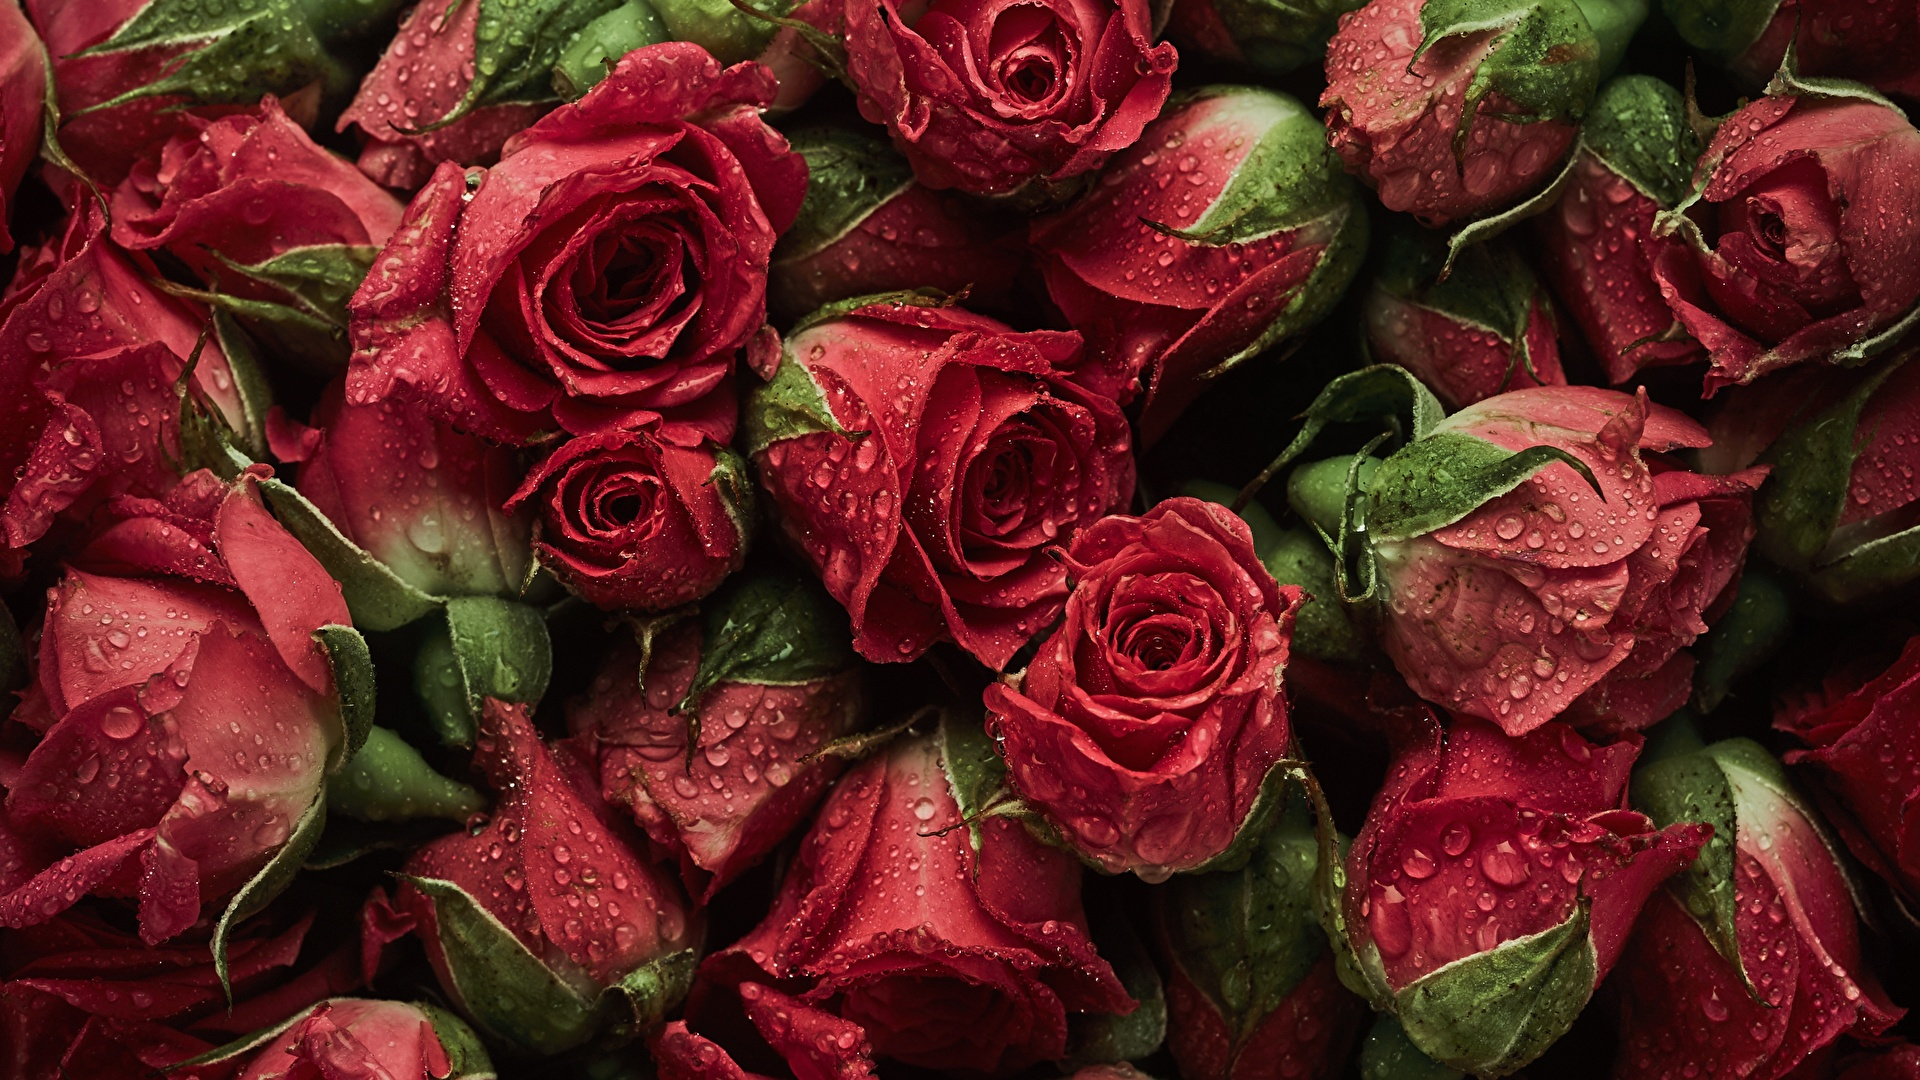 Wallpaper Texture Red Roses Drops Flowers Many 1920x1080